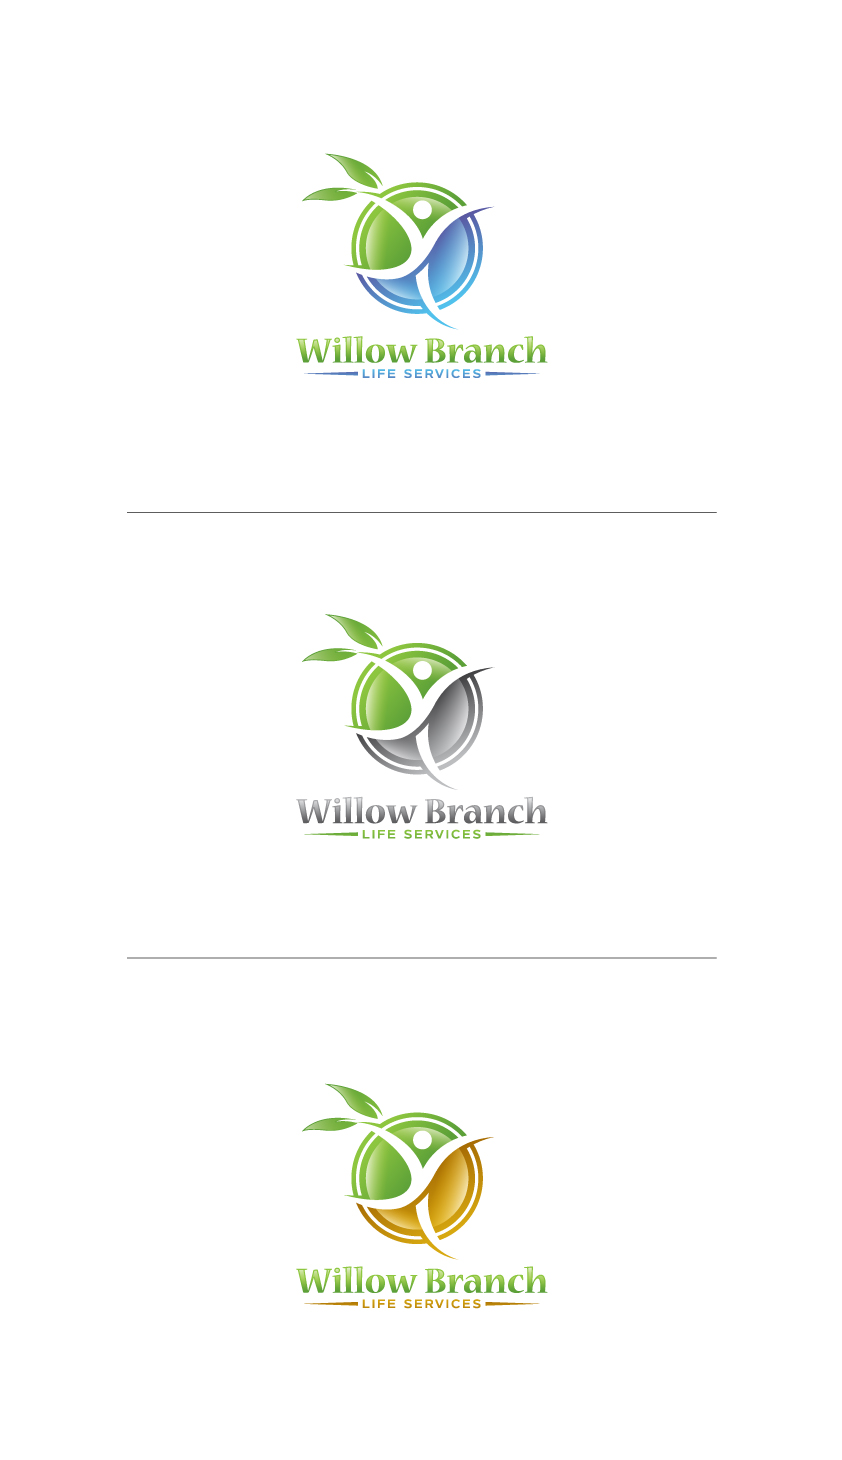 Logo Design by Tauhid Shaikh - Entry No. 175 in the Logo Design Contest Artistic Logo Design for Willow Branch Life Service.